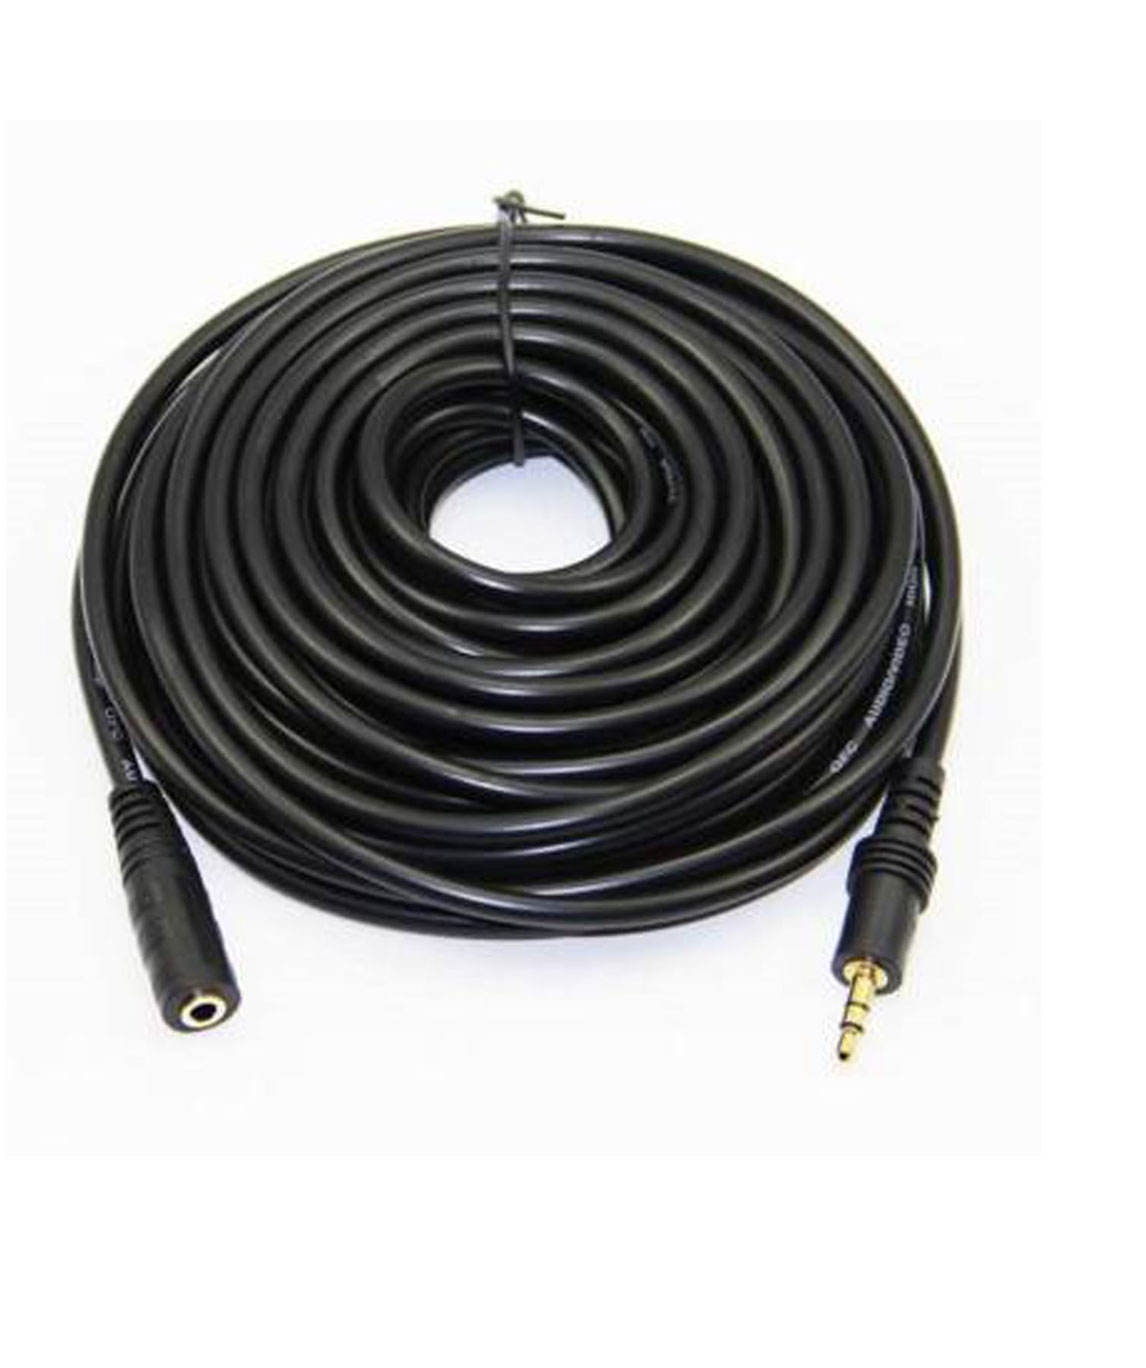 HIGH QUALITY 5 METER 3.5MM STEREO MALE TO FEMALE EXTENSION AUX CABLE (COMPATIBLE WITH SPEAKER, BLACK)